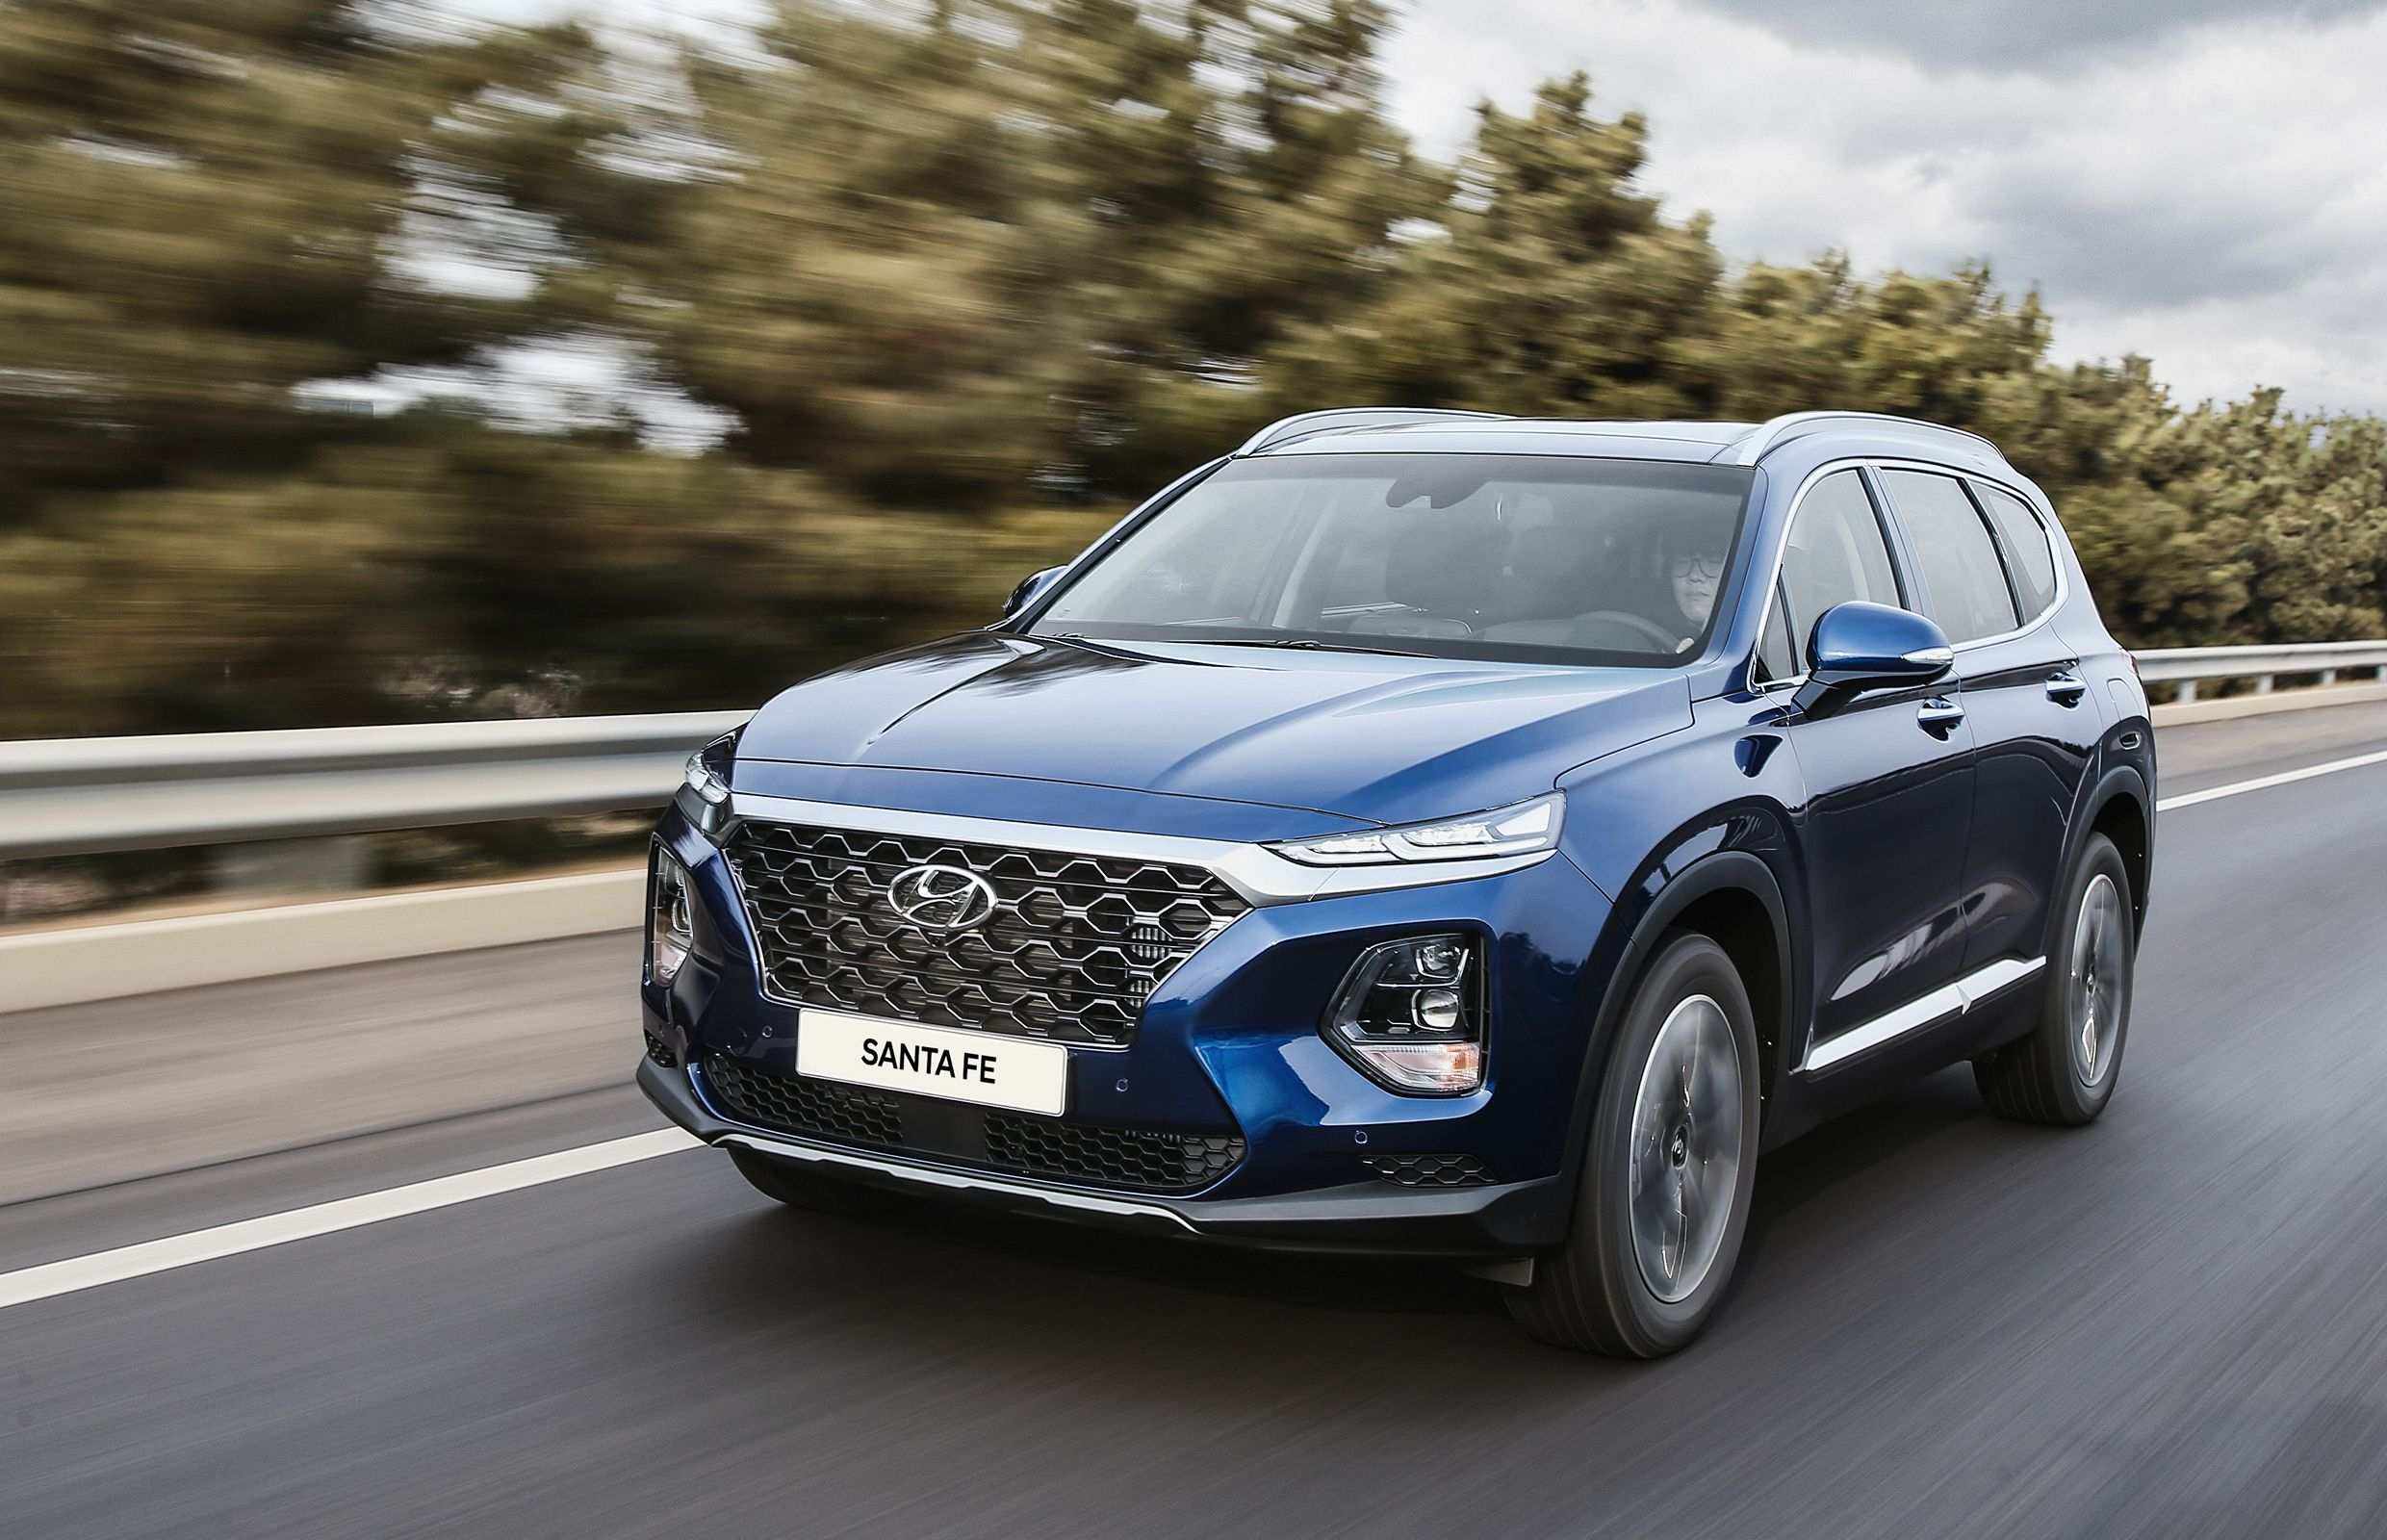 23 Concept of The Santa Fe Kia 2019 Rumors Ratings for The Santa Fe Kia 2019 Rumors